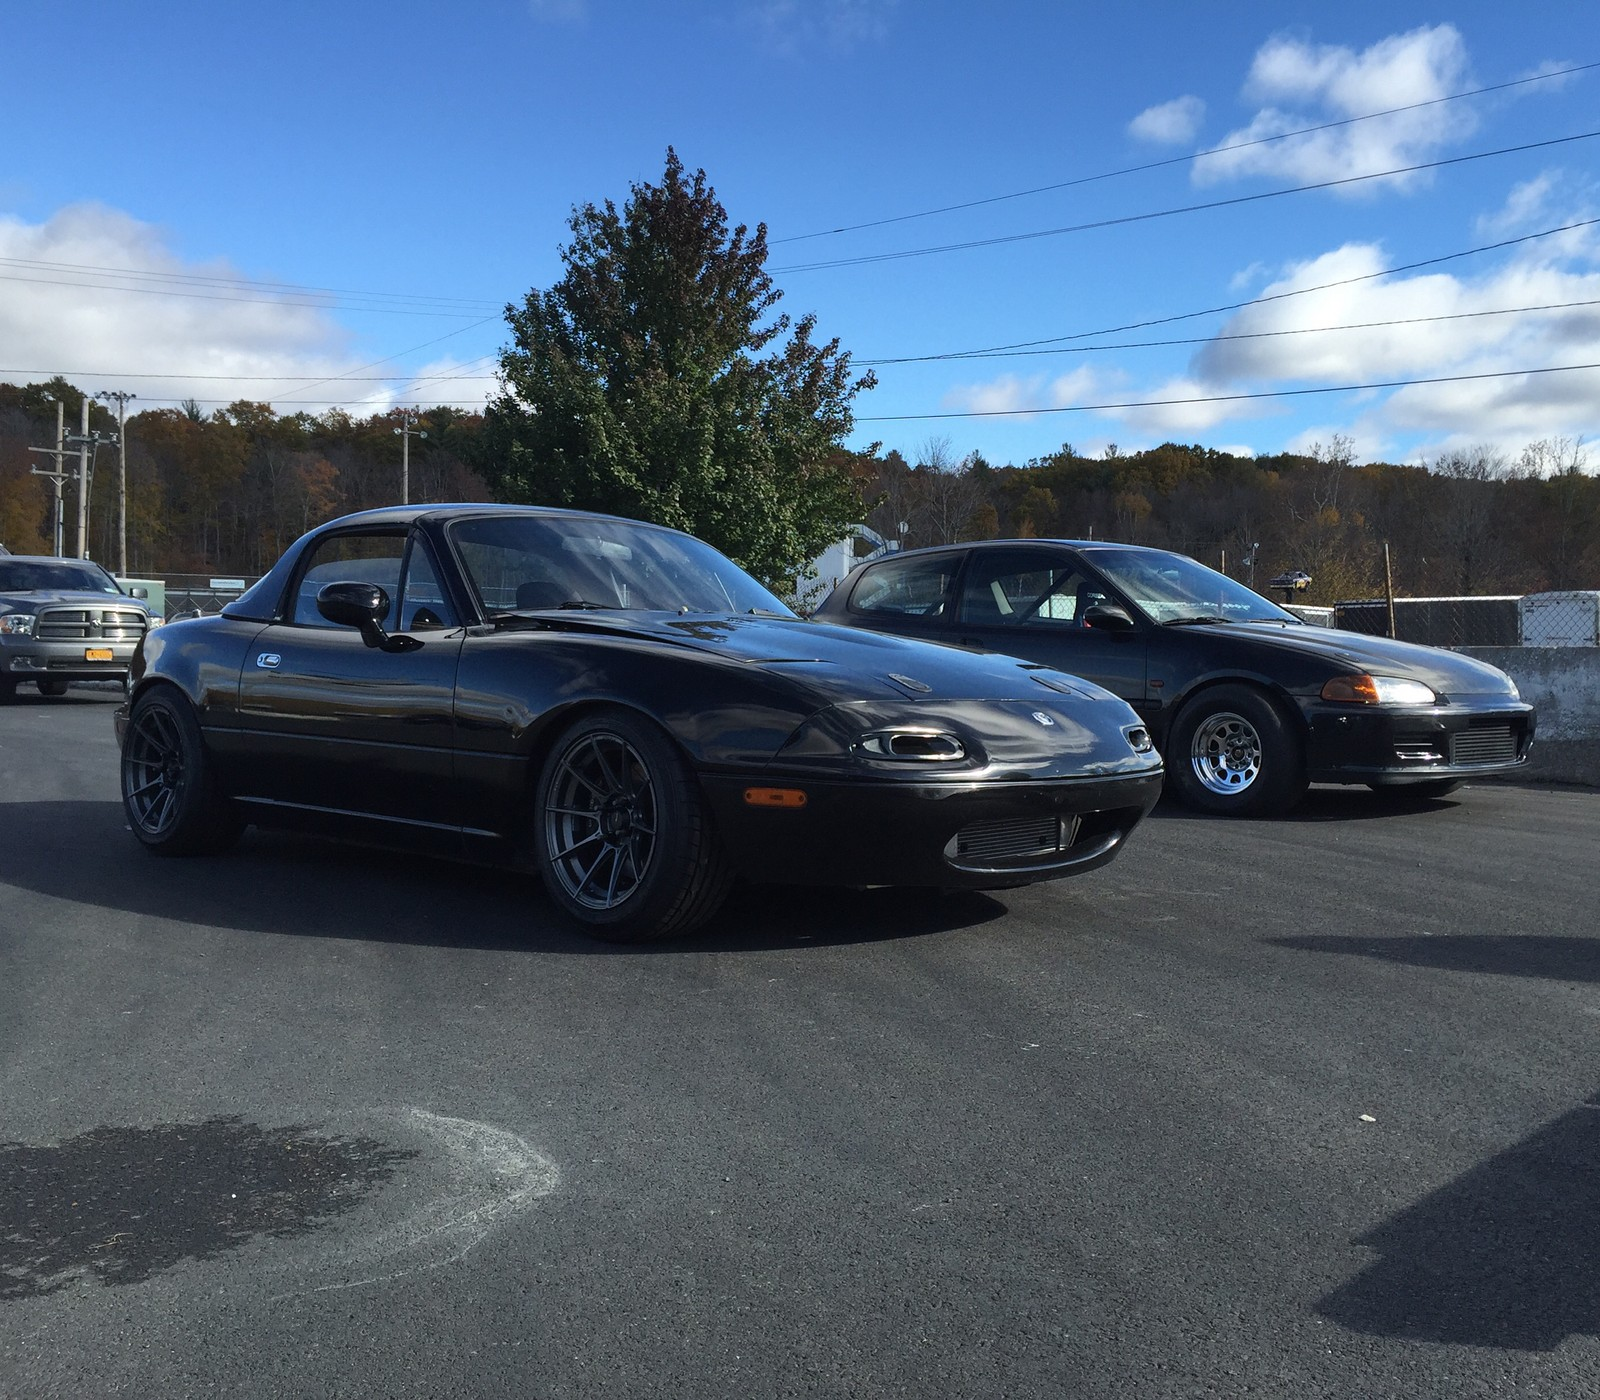 1993 mazda miata mx5 1/4 mile drag racing timeslip specs 0-60